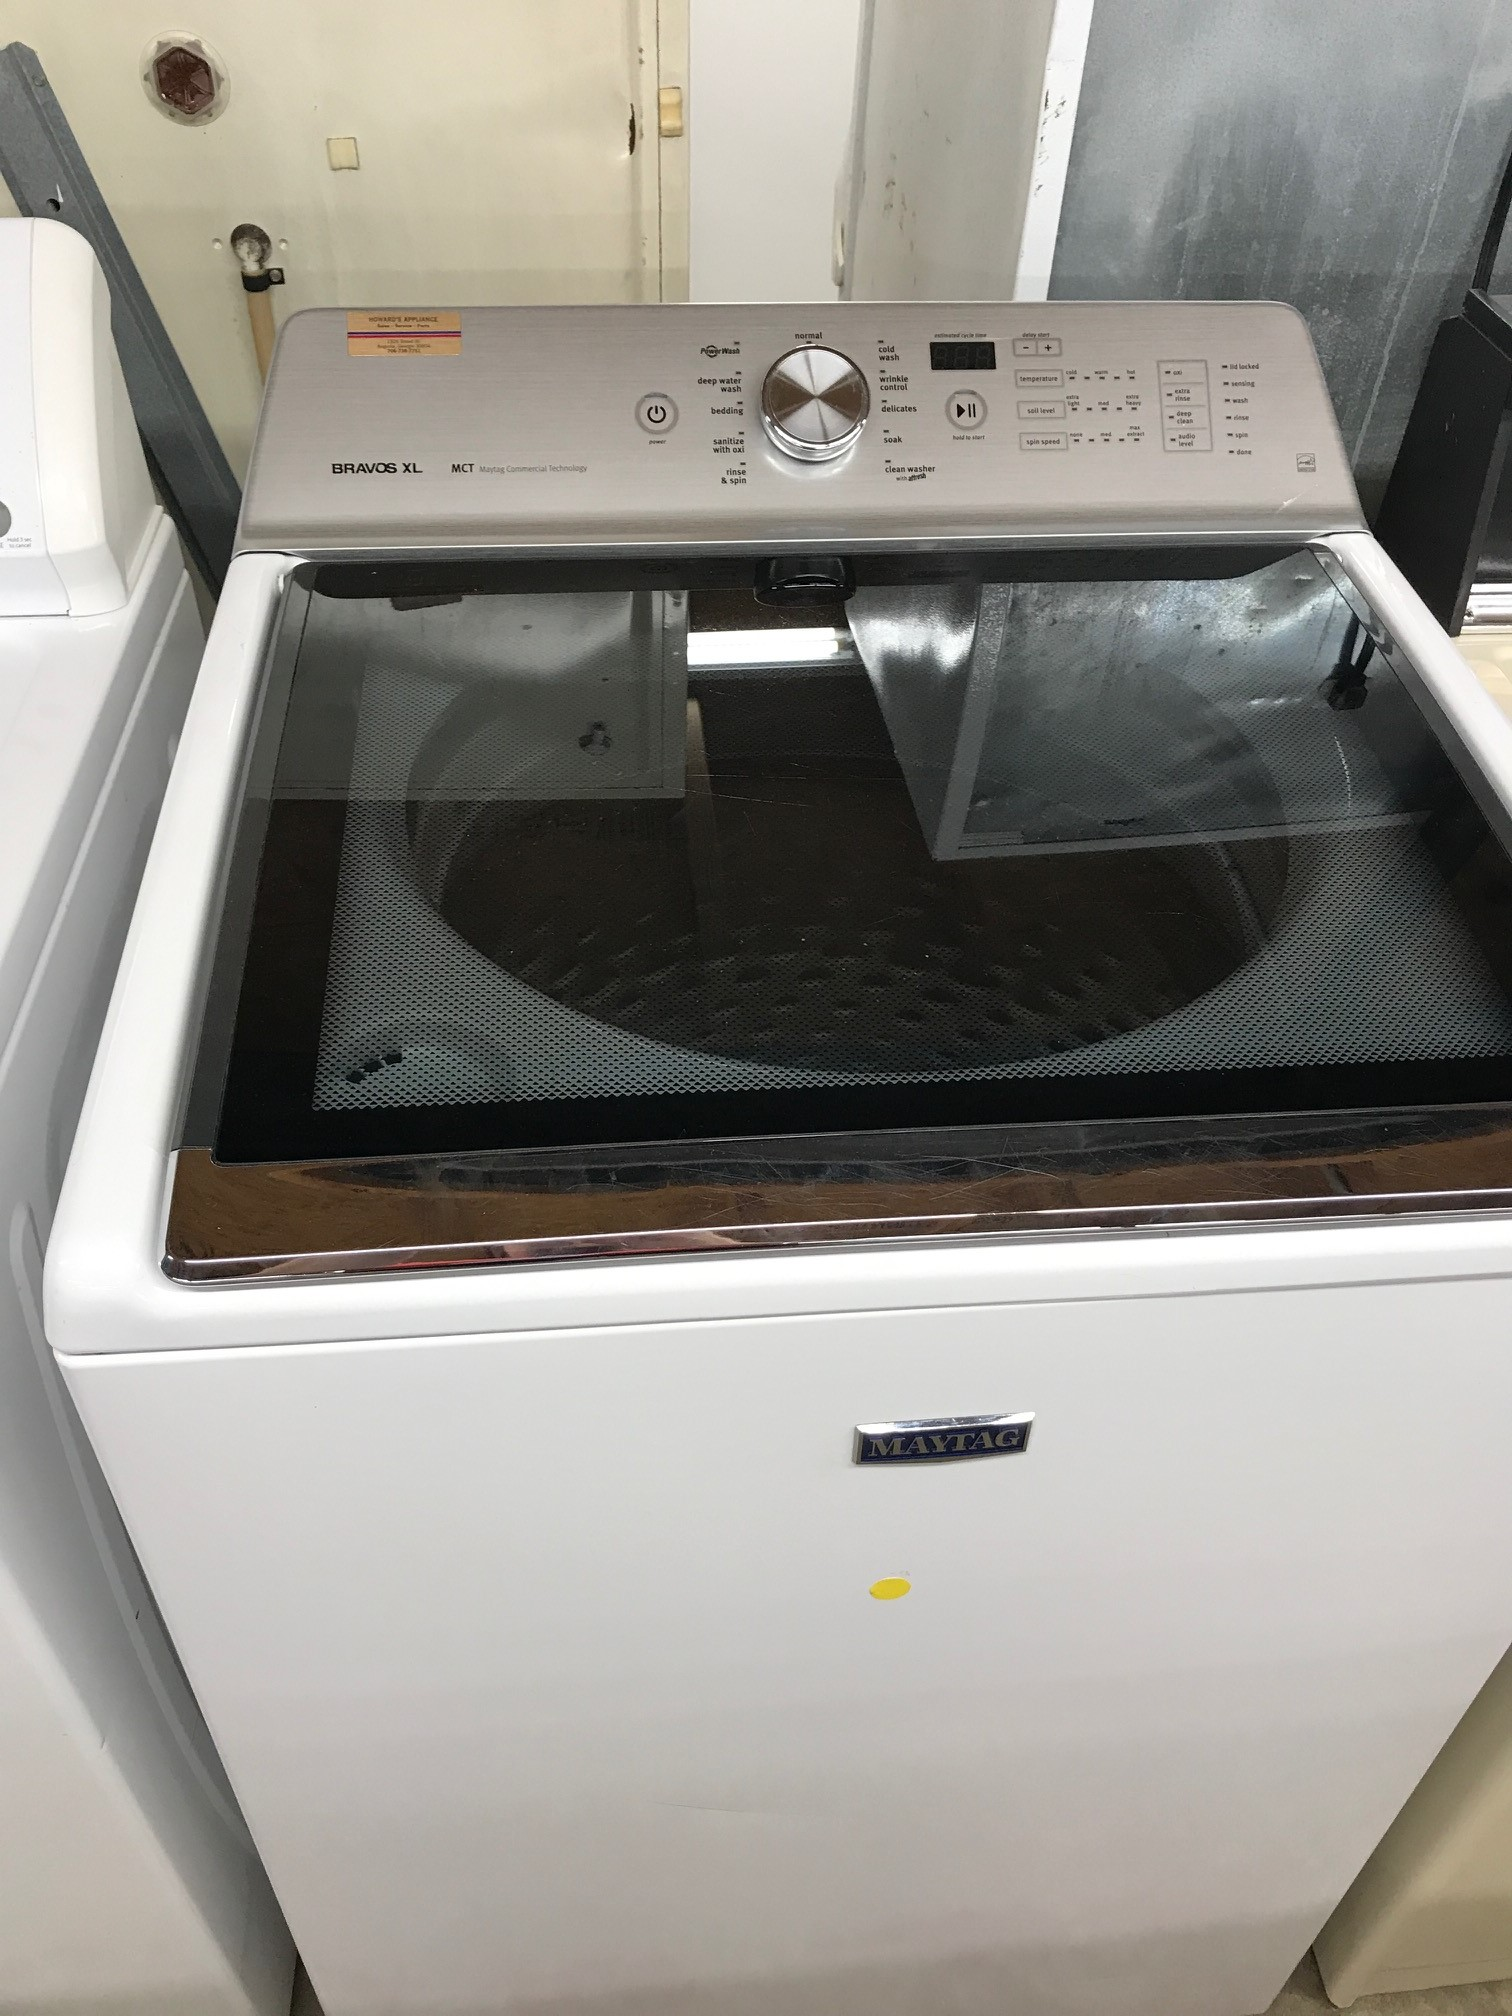 Very nice refurbished Maytag XL at Howards Appliance comes with 90 day warranty on parts and labor